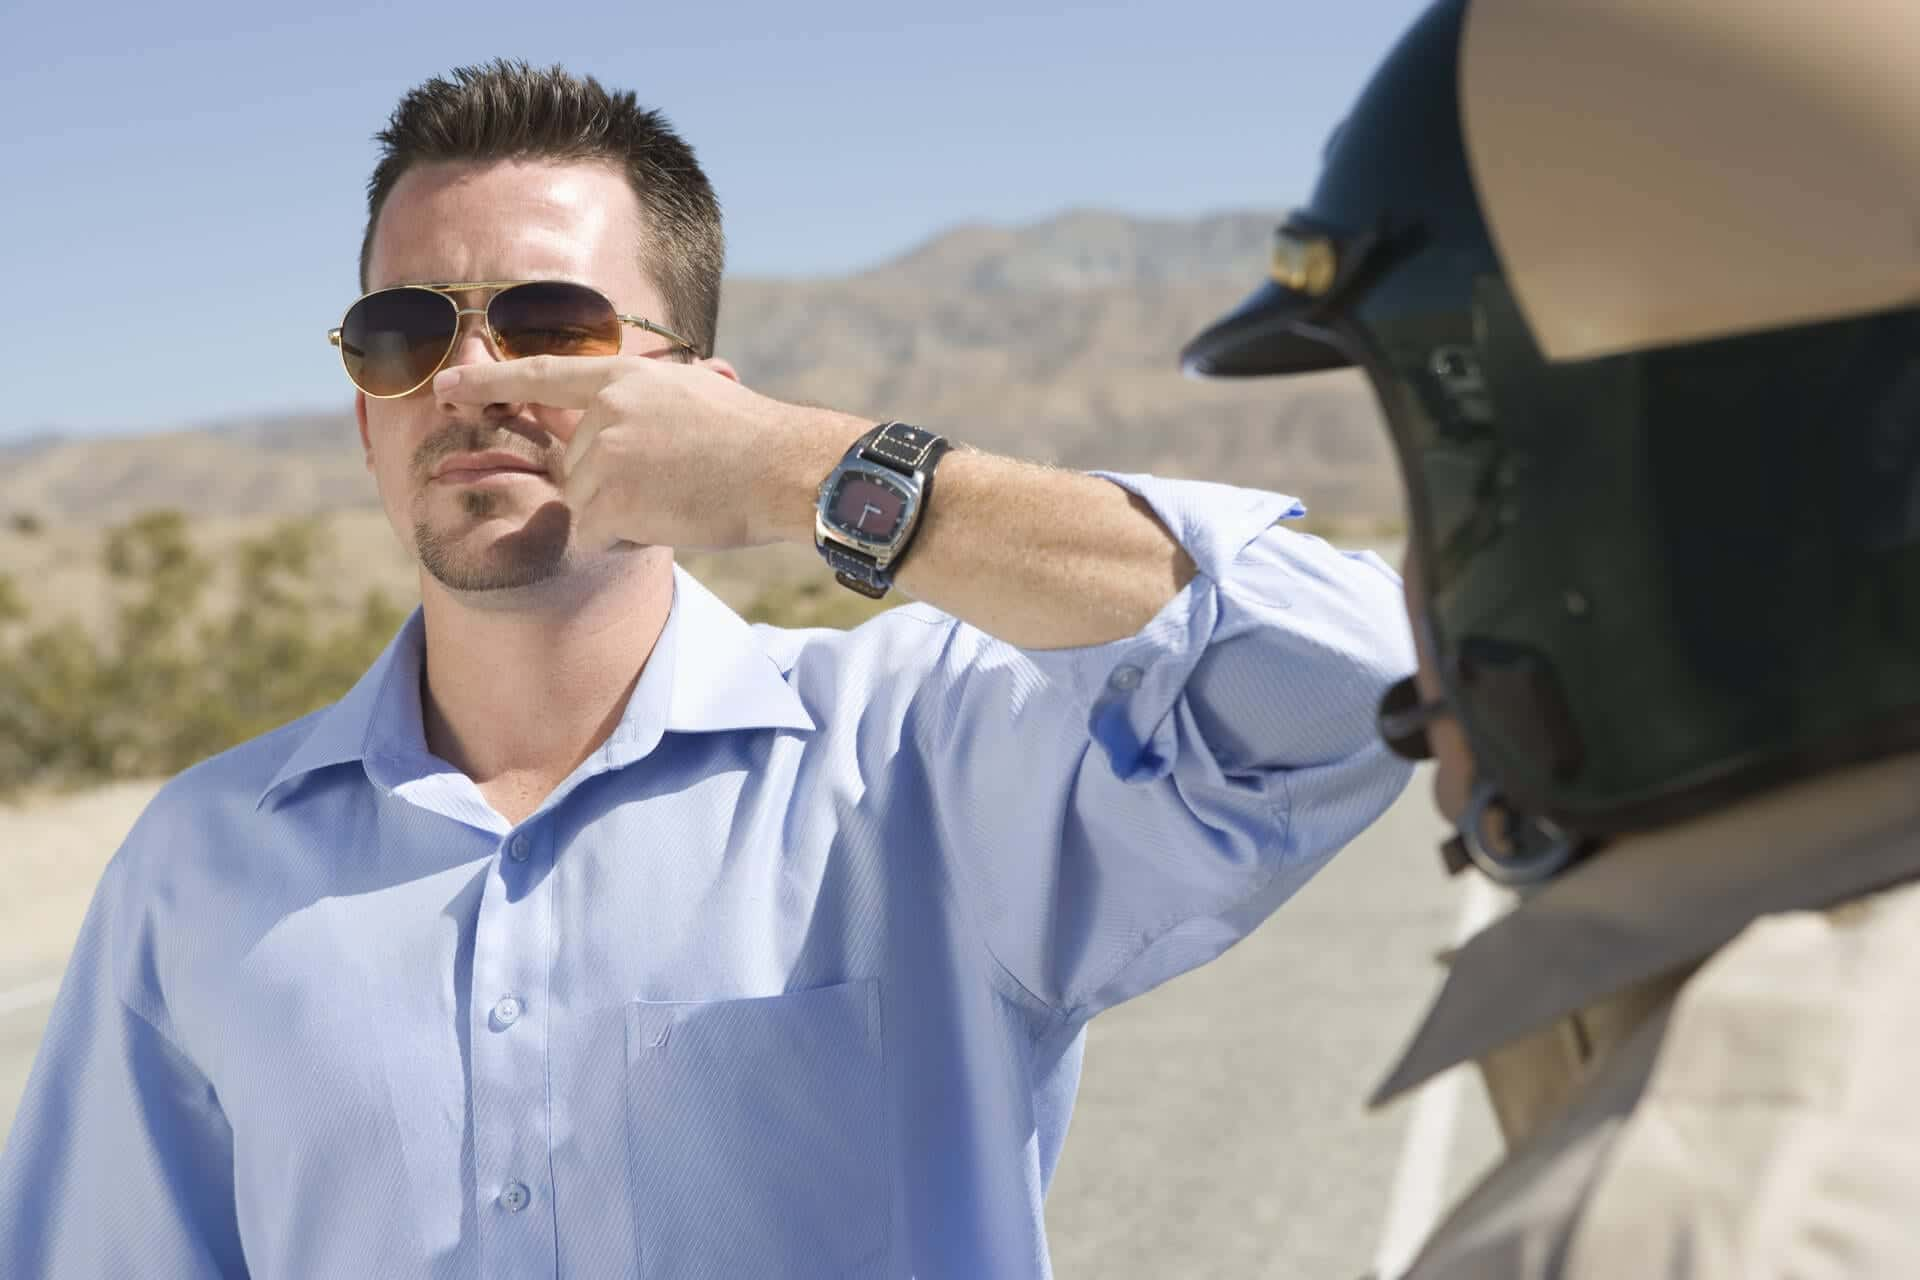 Why You Should Never Take a Texas Field Sobriety Test